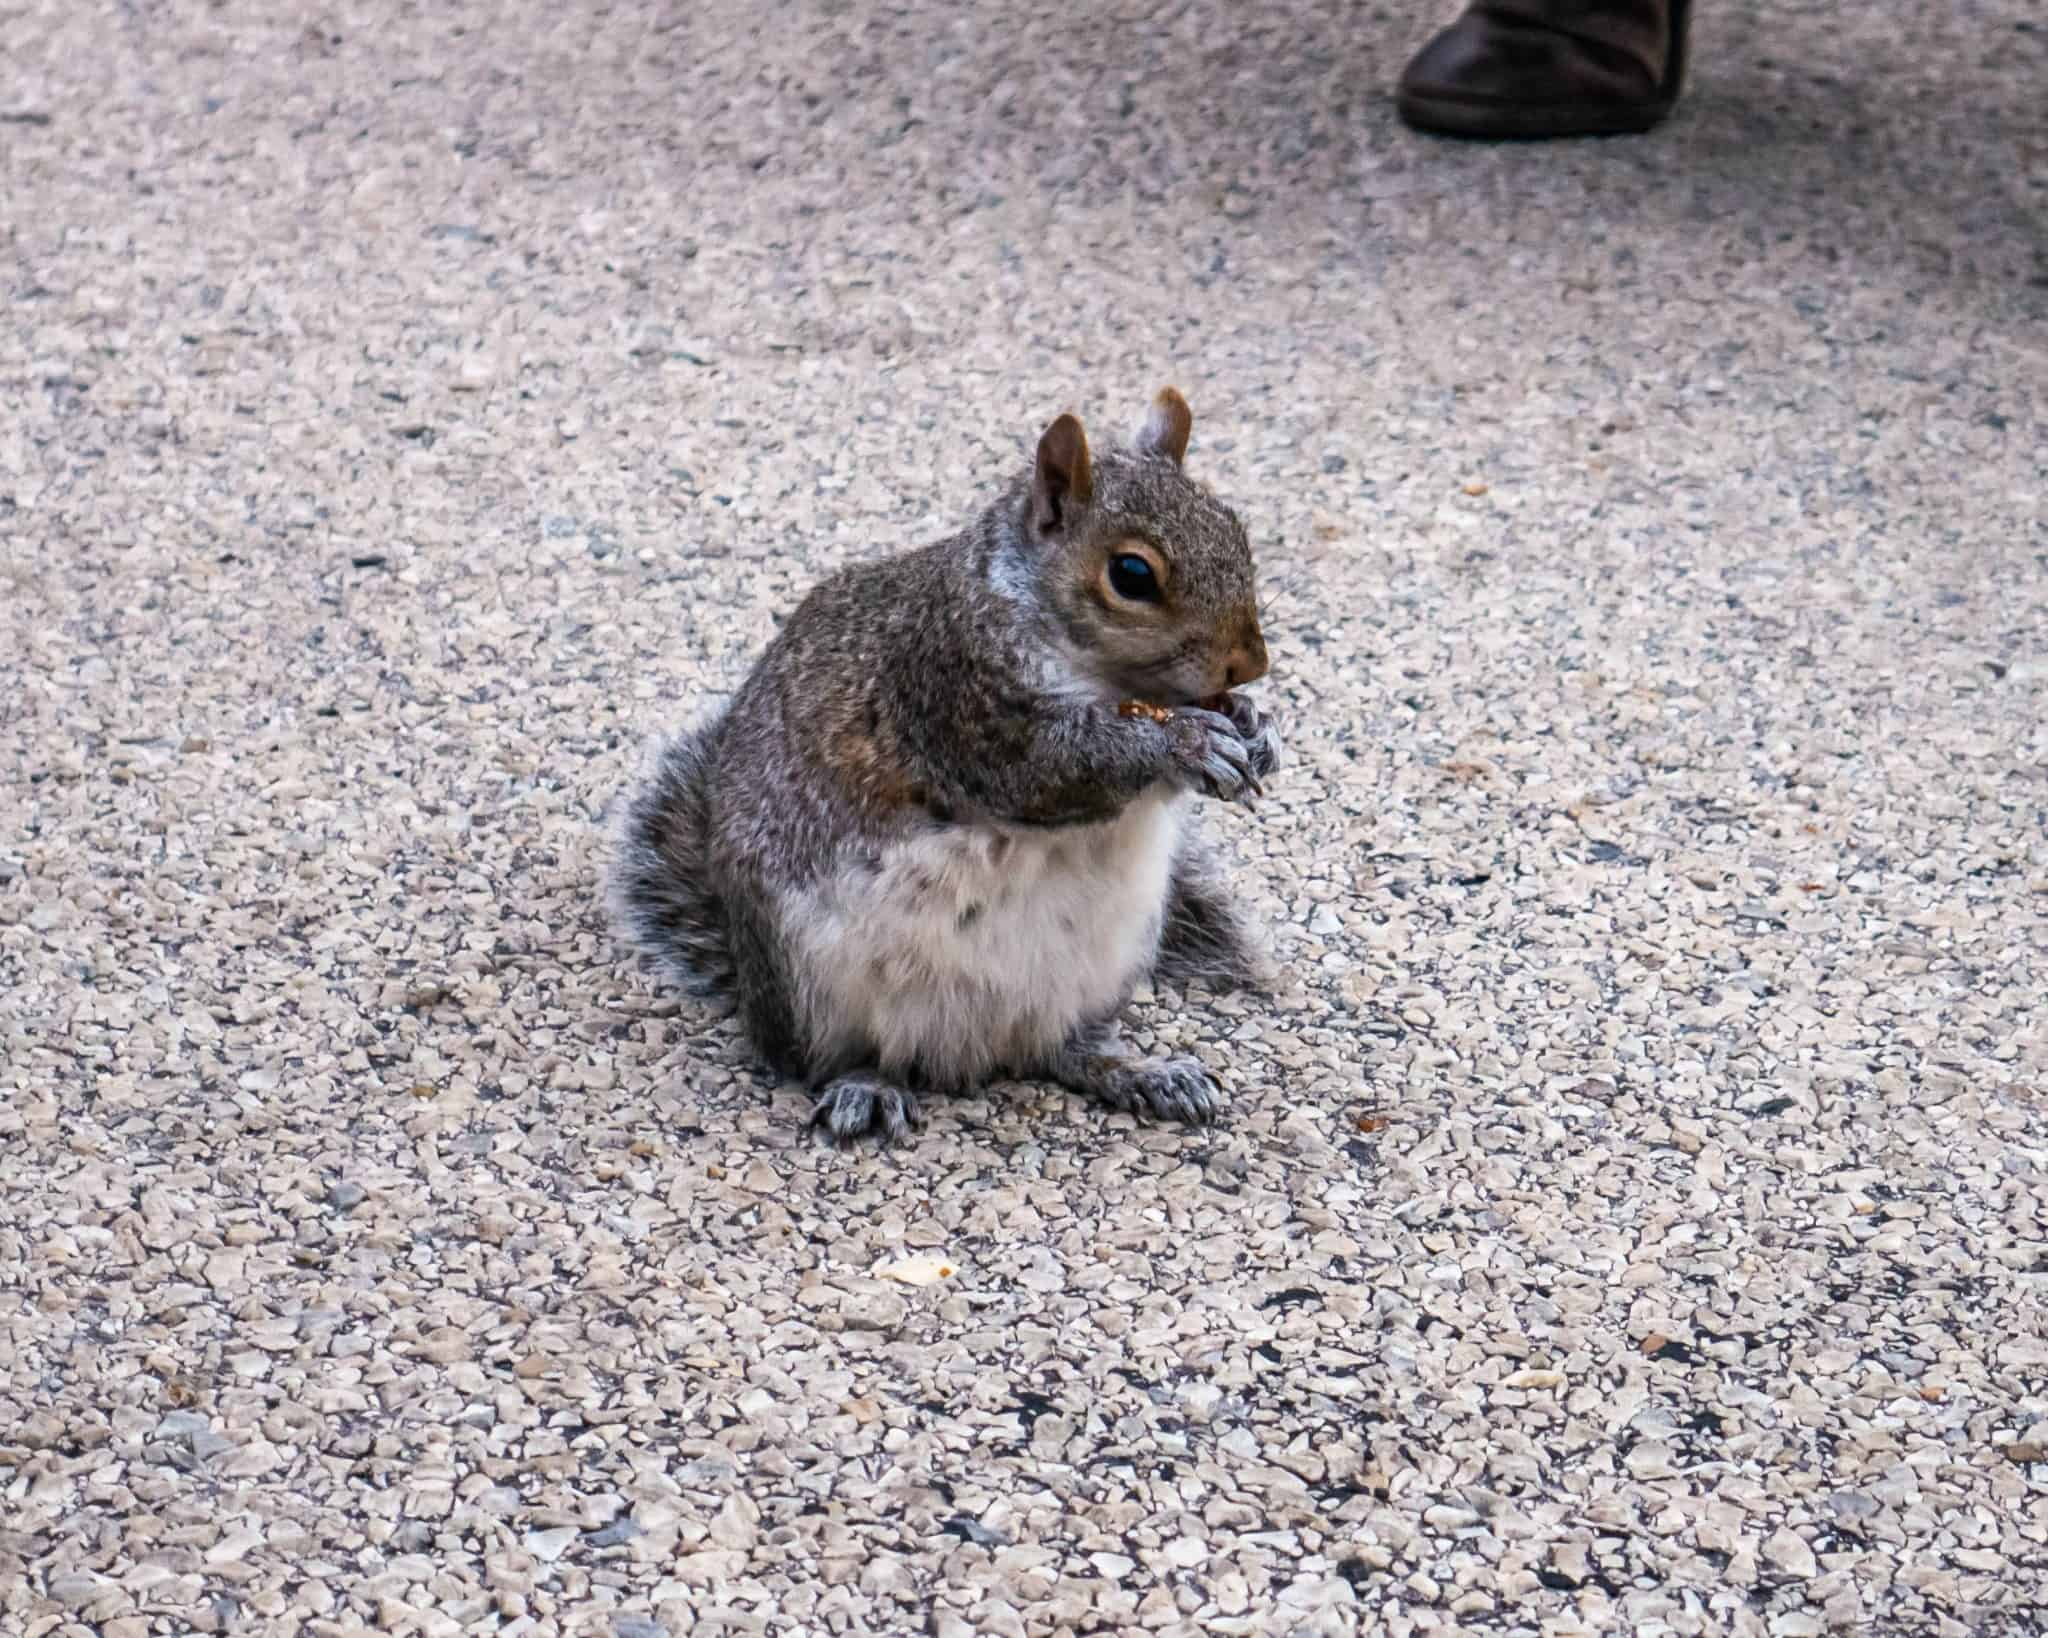 A Hungry Creature   Friendly NYC Squirrel